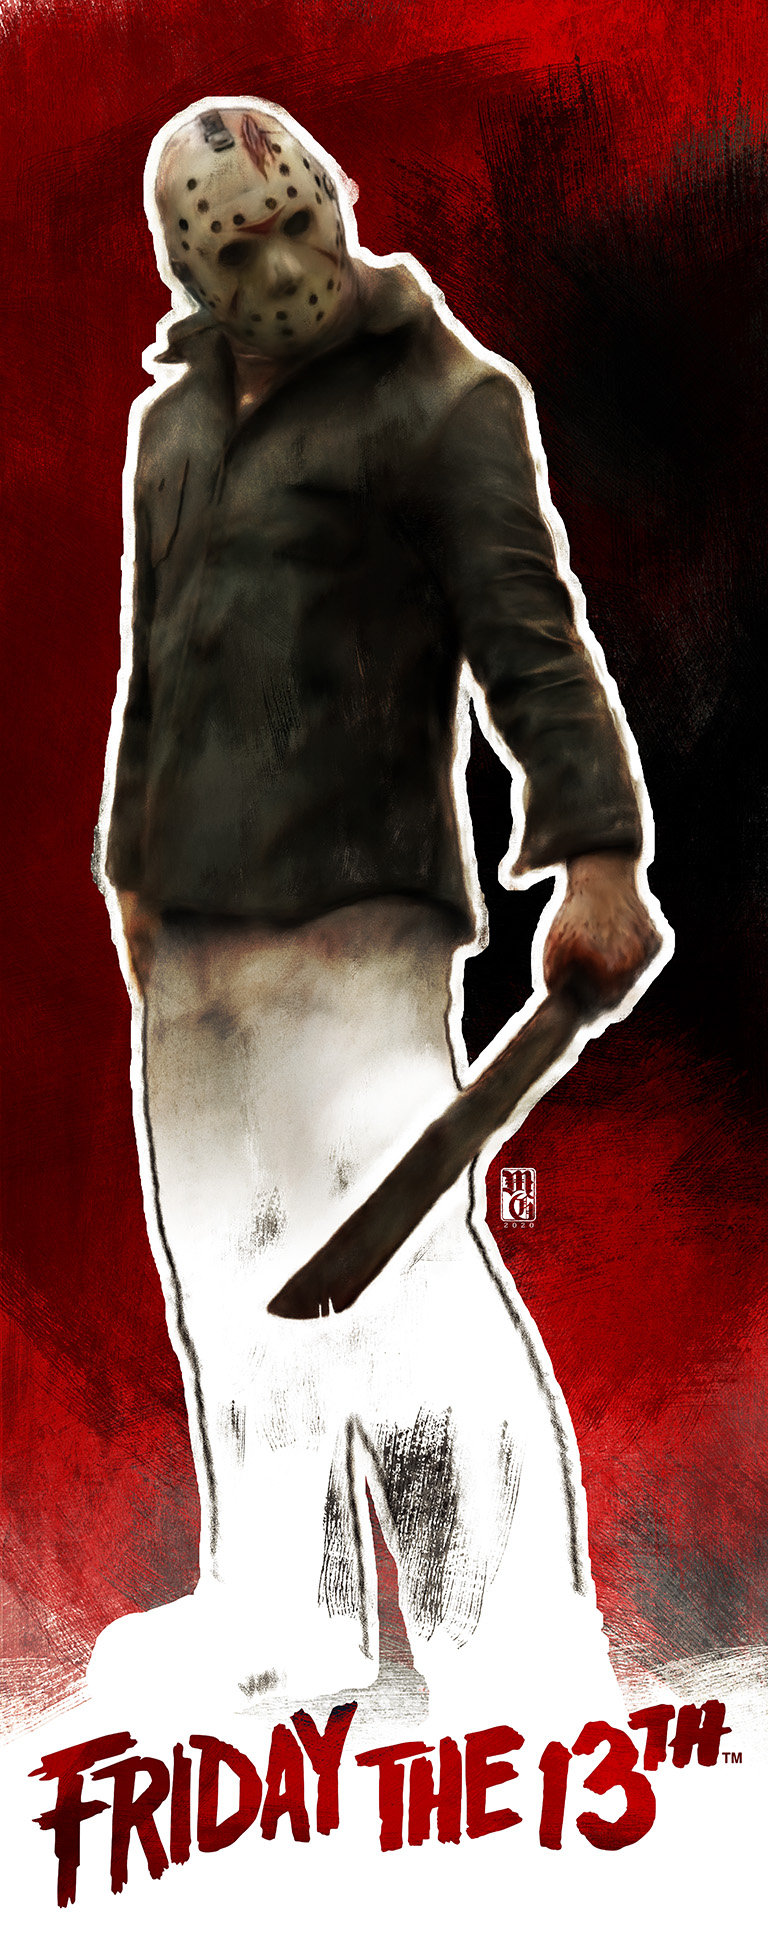 """Sketch of Jason Voorhees from """"Friday the 13th"""" movie series"""